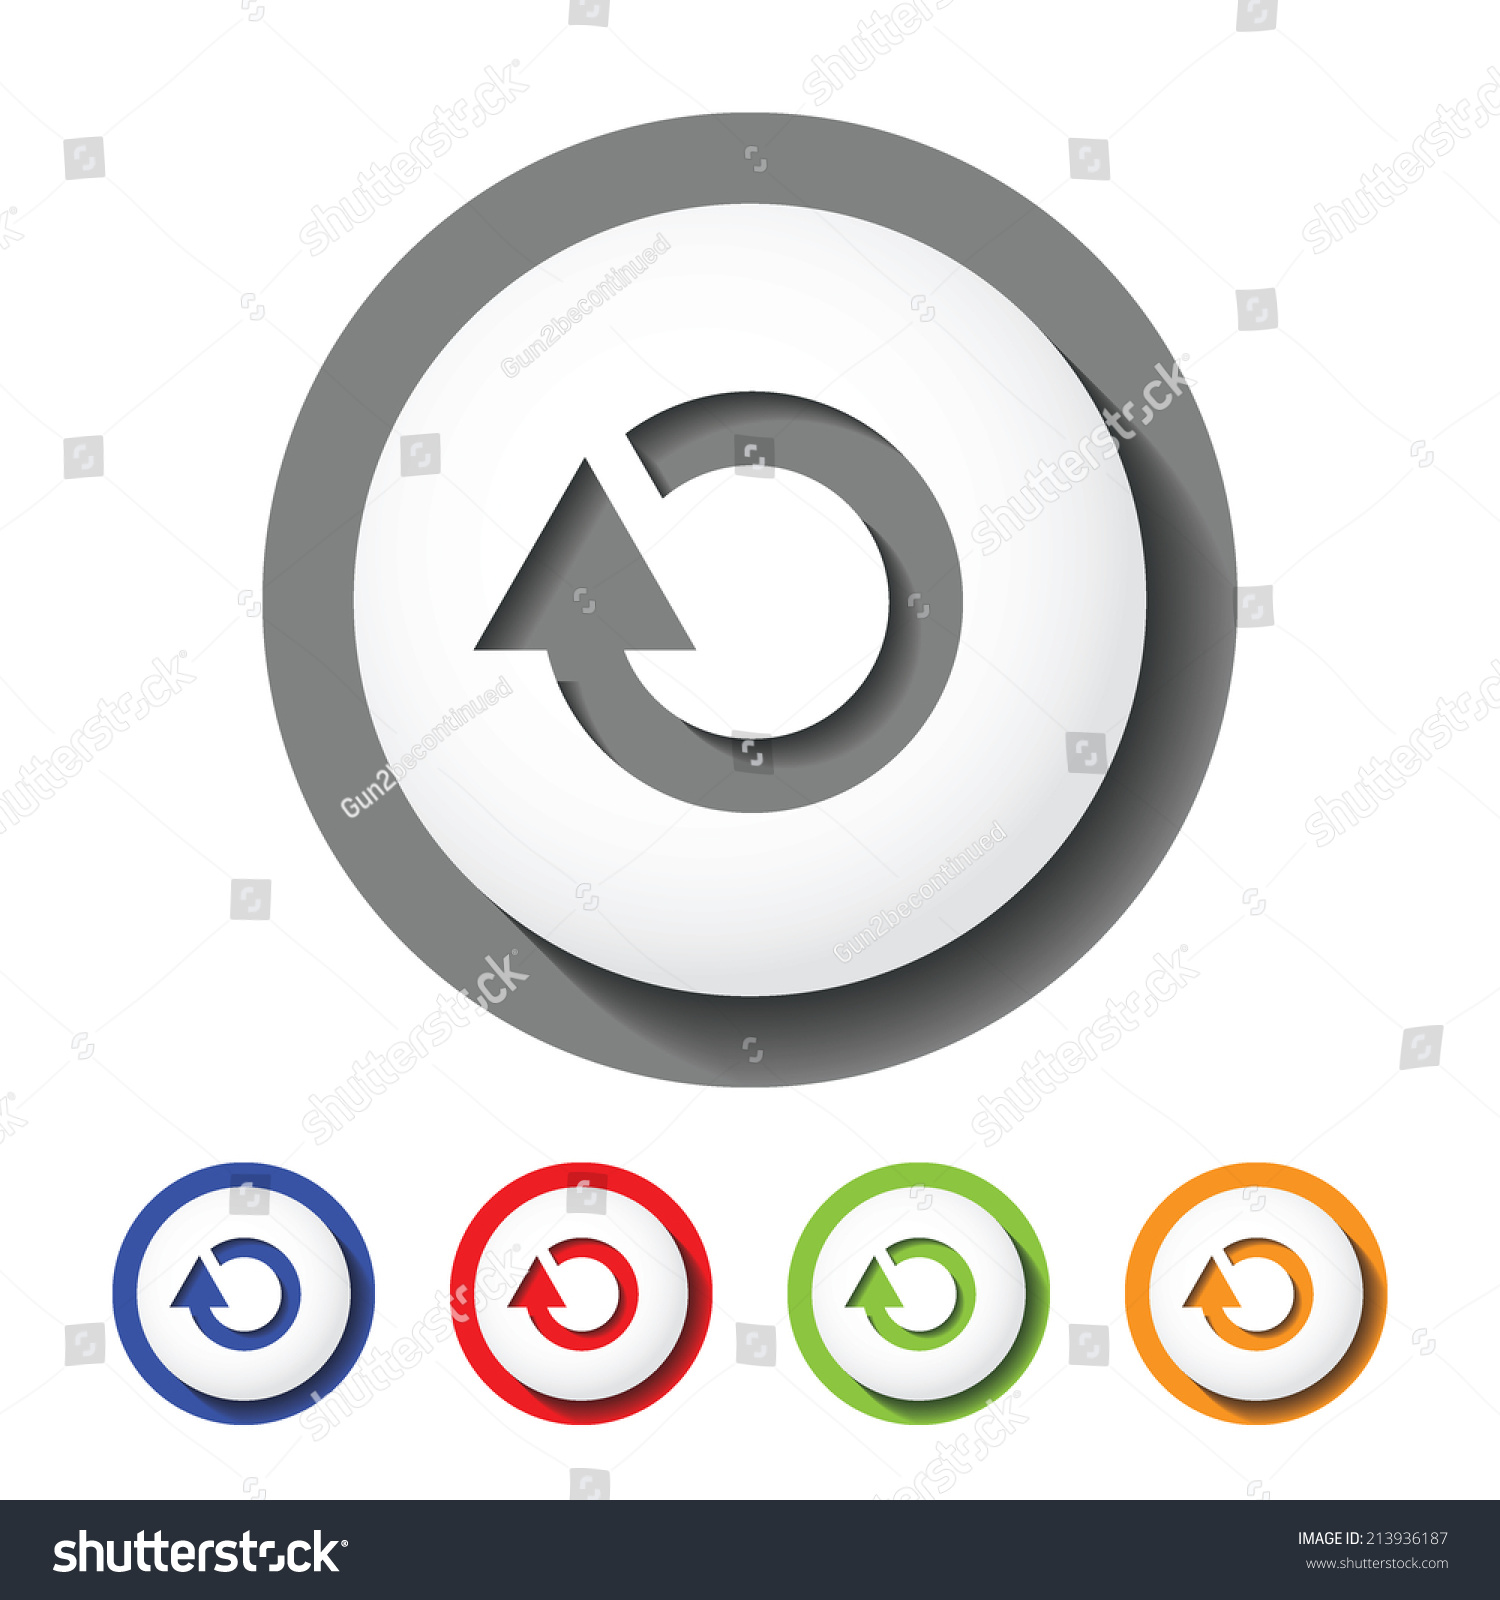 replay sign icon stock vector illustration 213936187